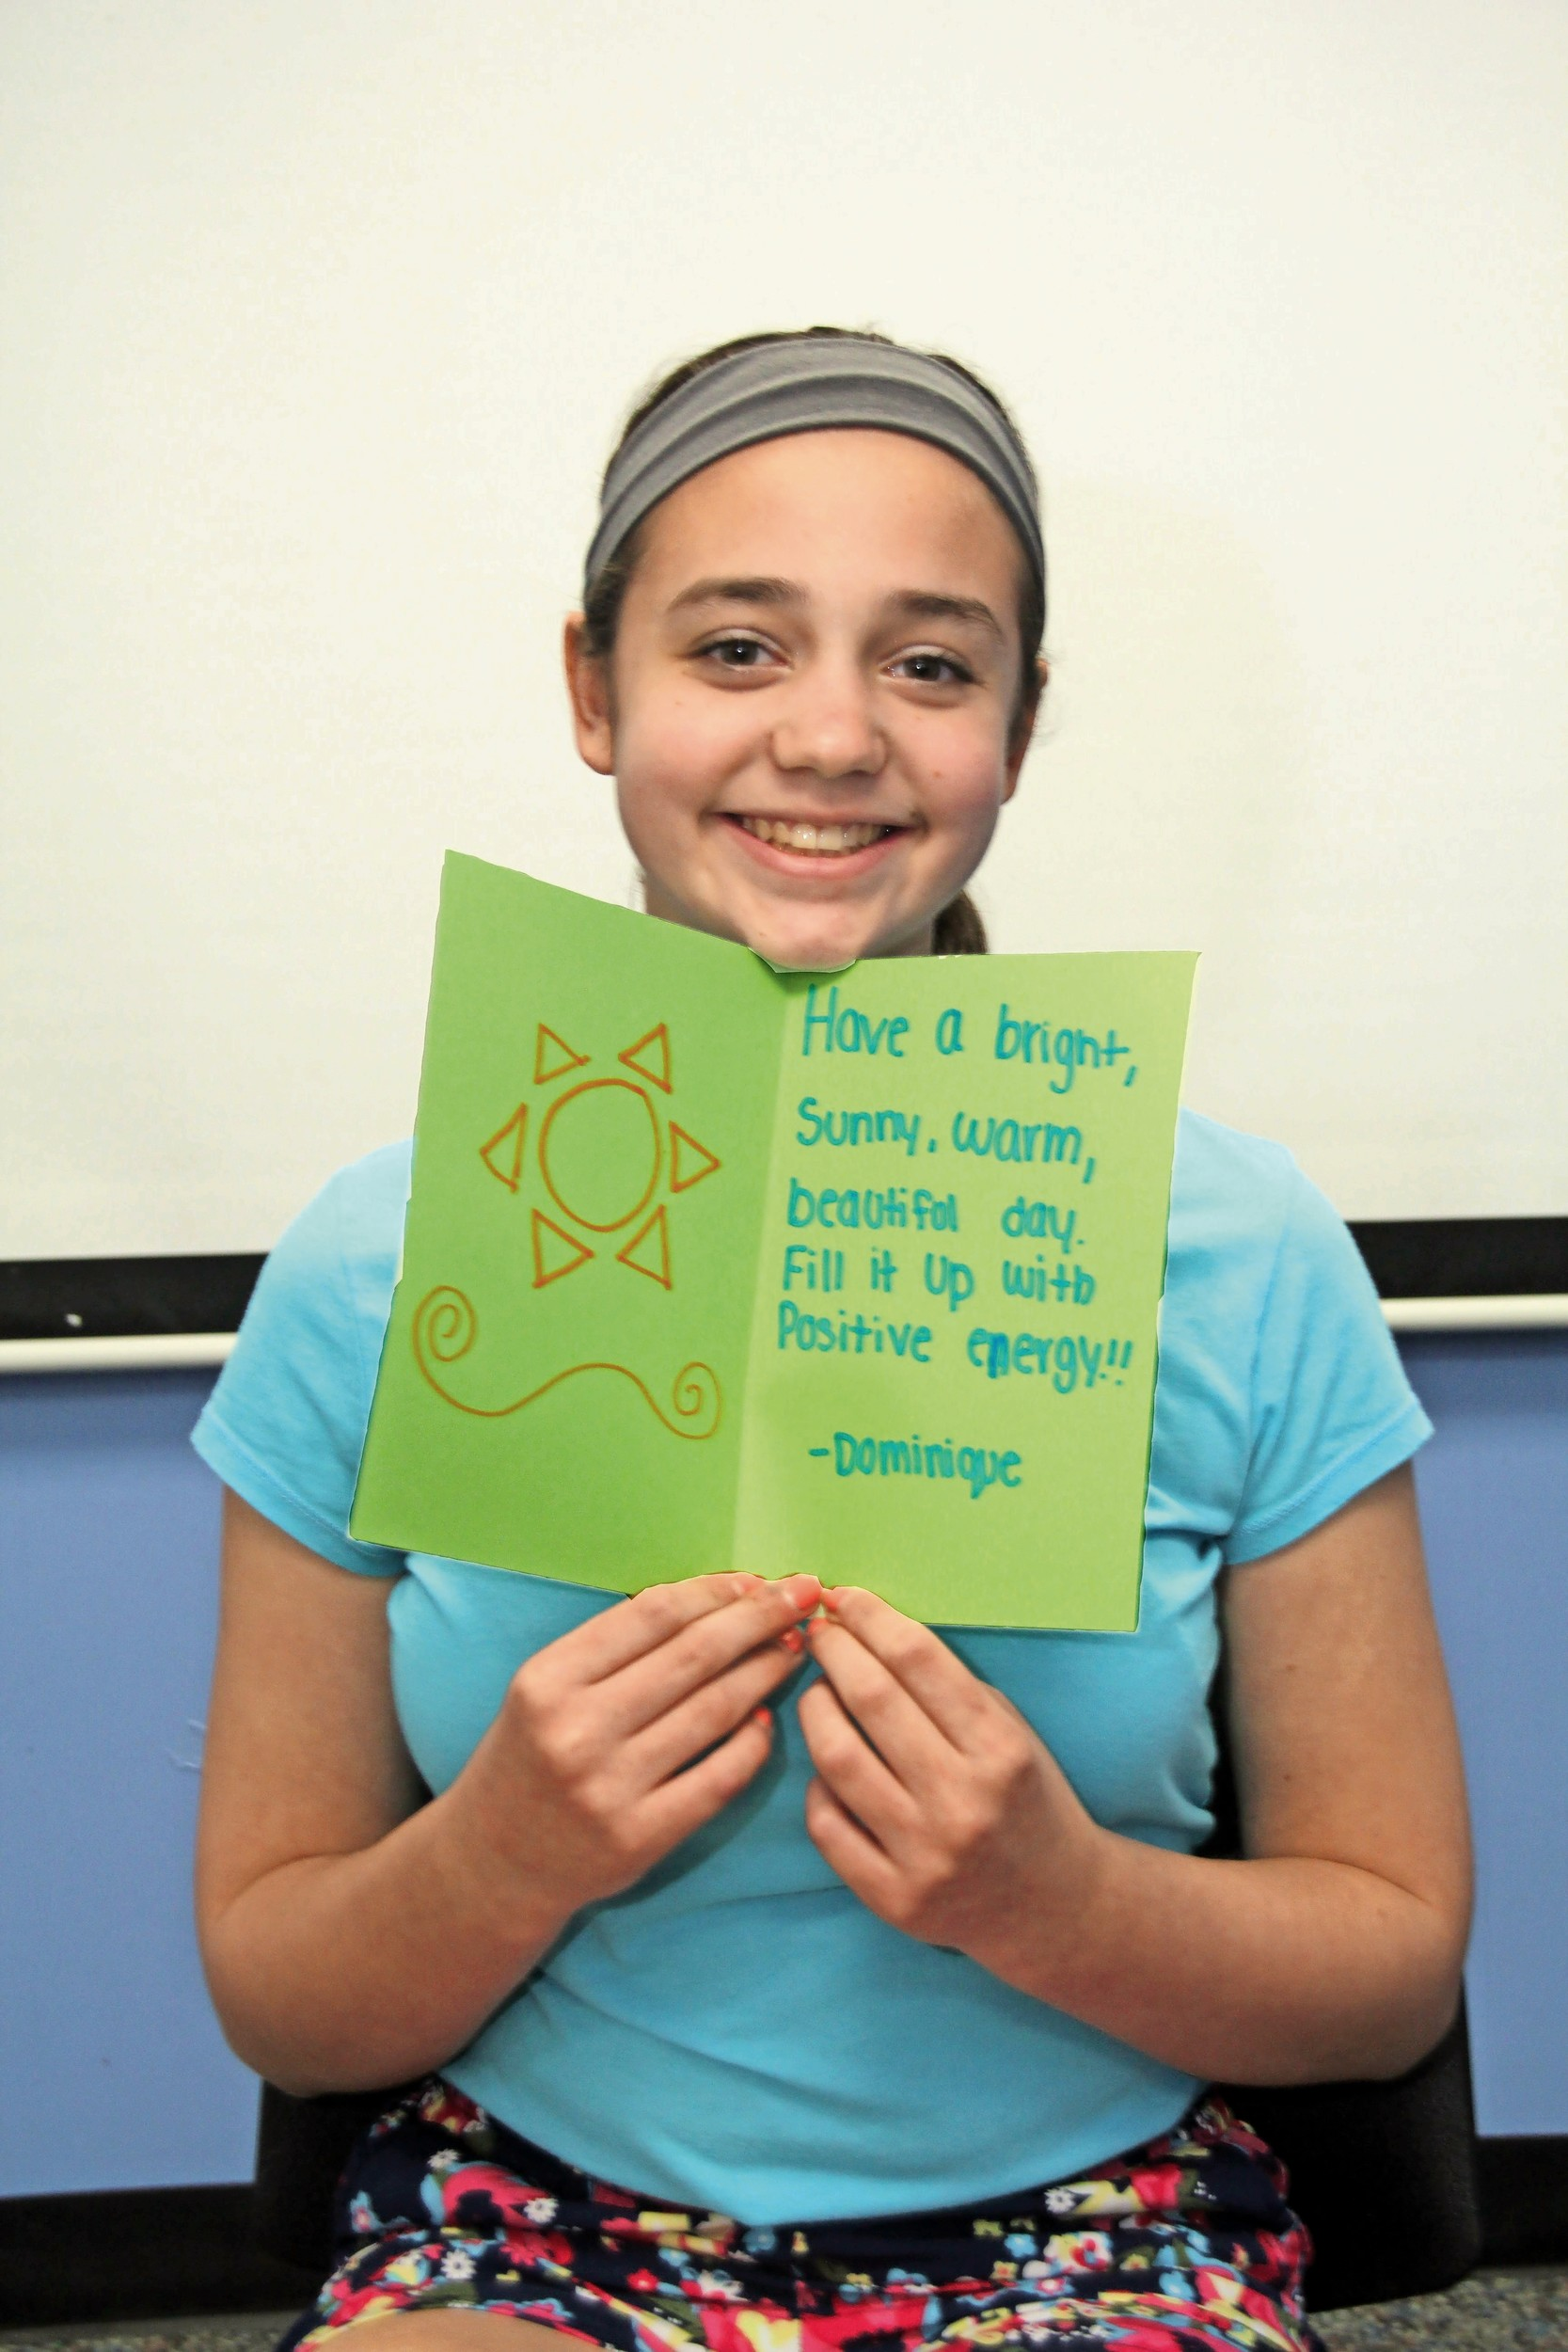 dominique cettina 14 offered words of encouragement in cards